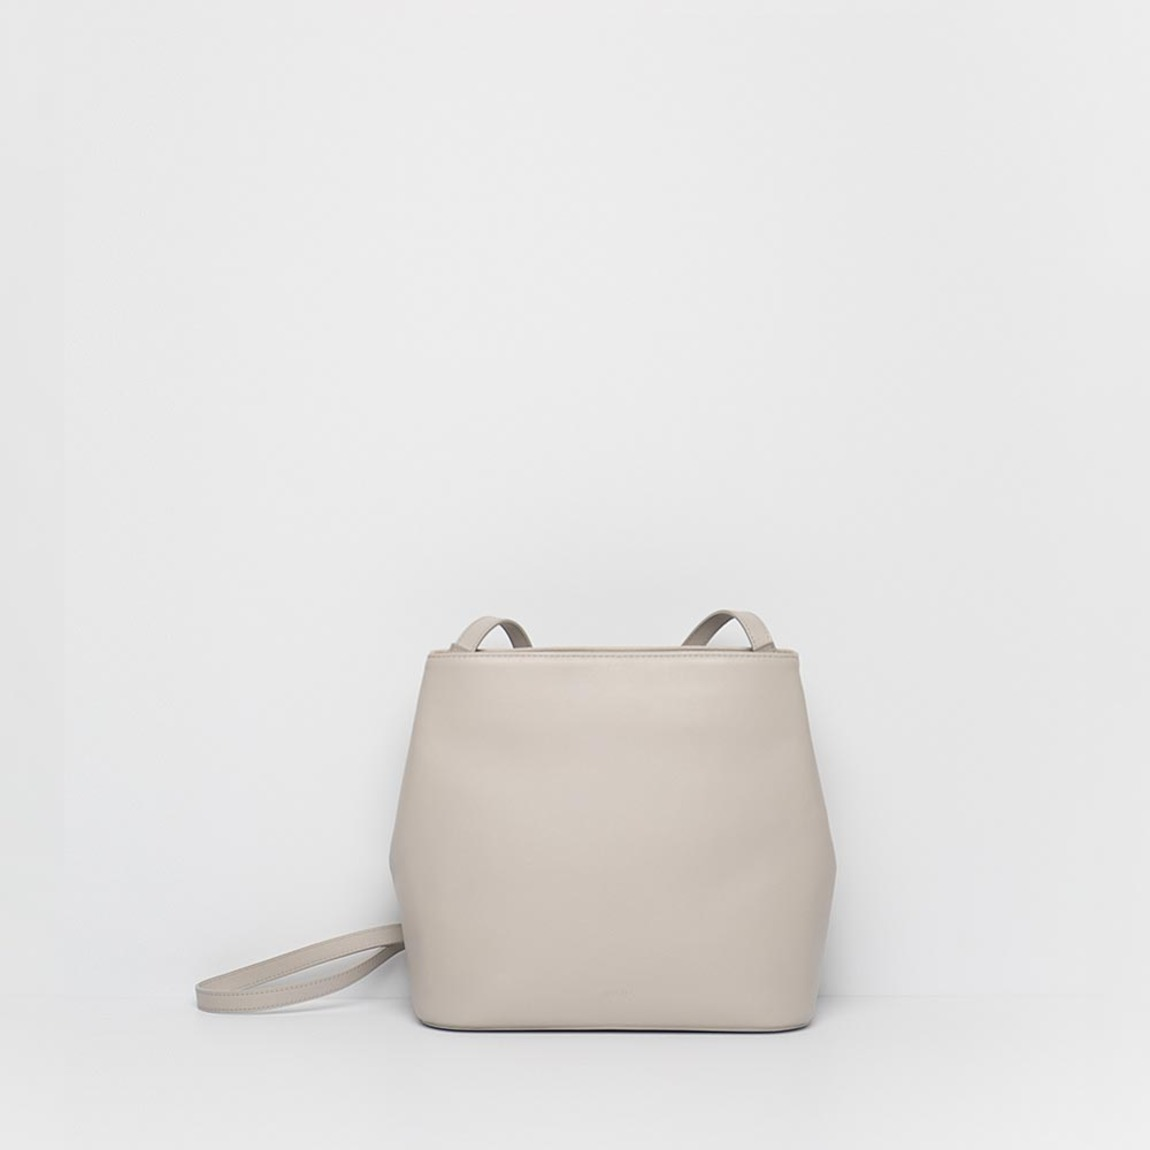 Aline Crossbody Bag Light Grey